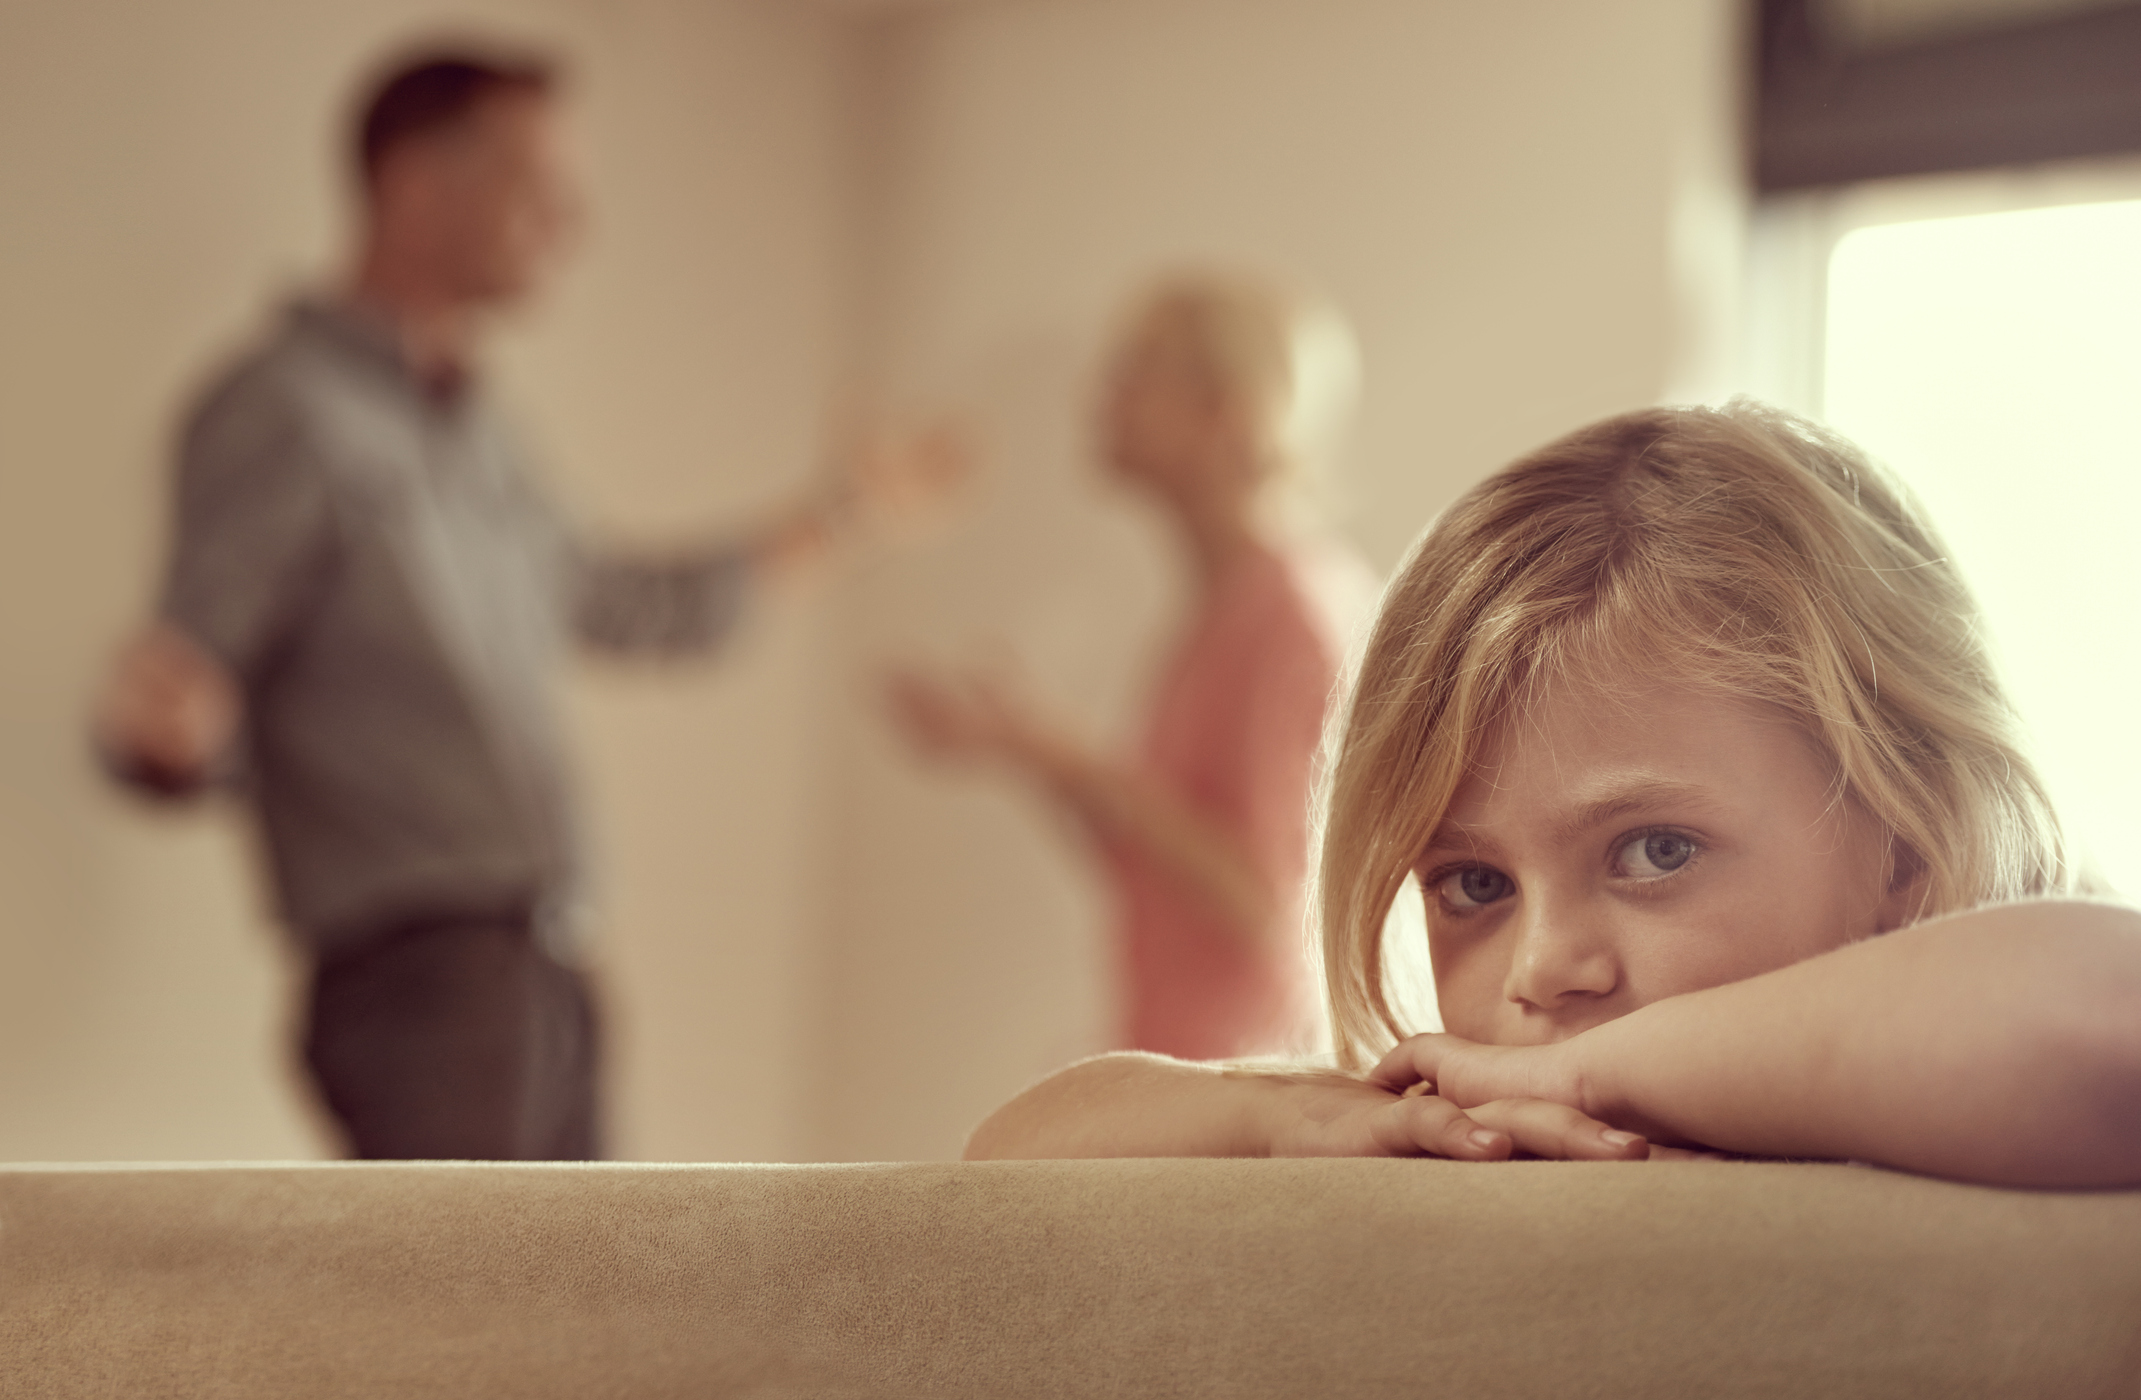 Sad little girl looks into camera while parents fight in background